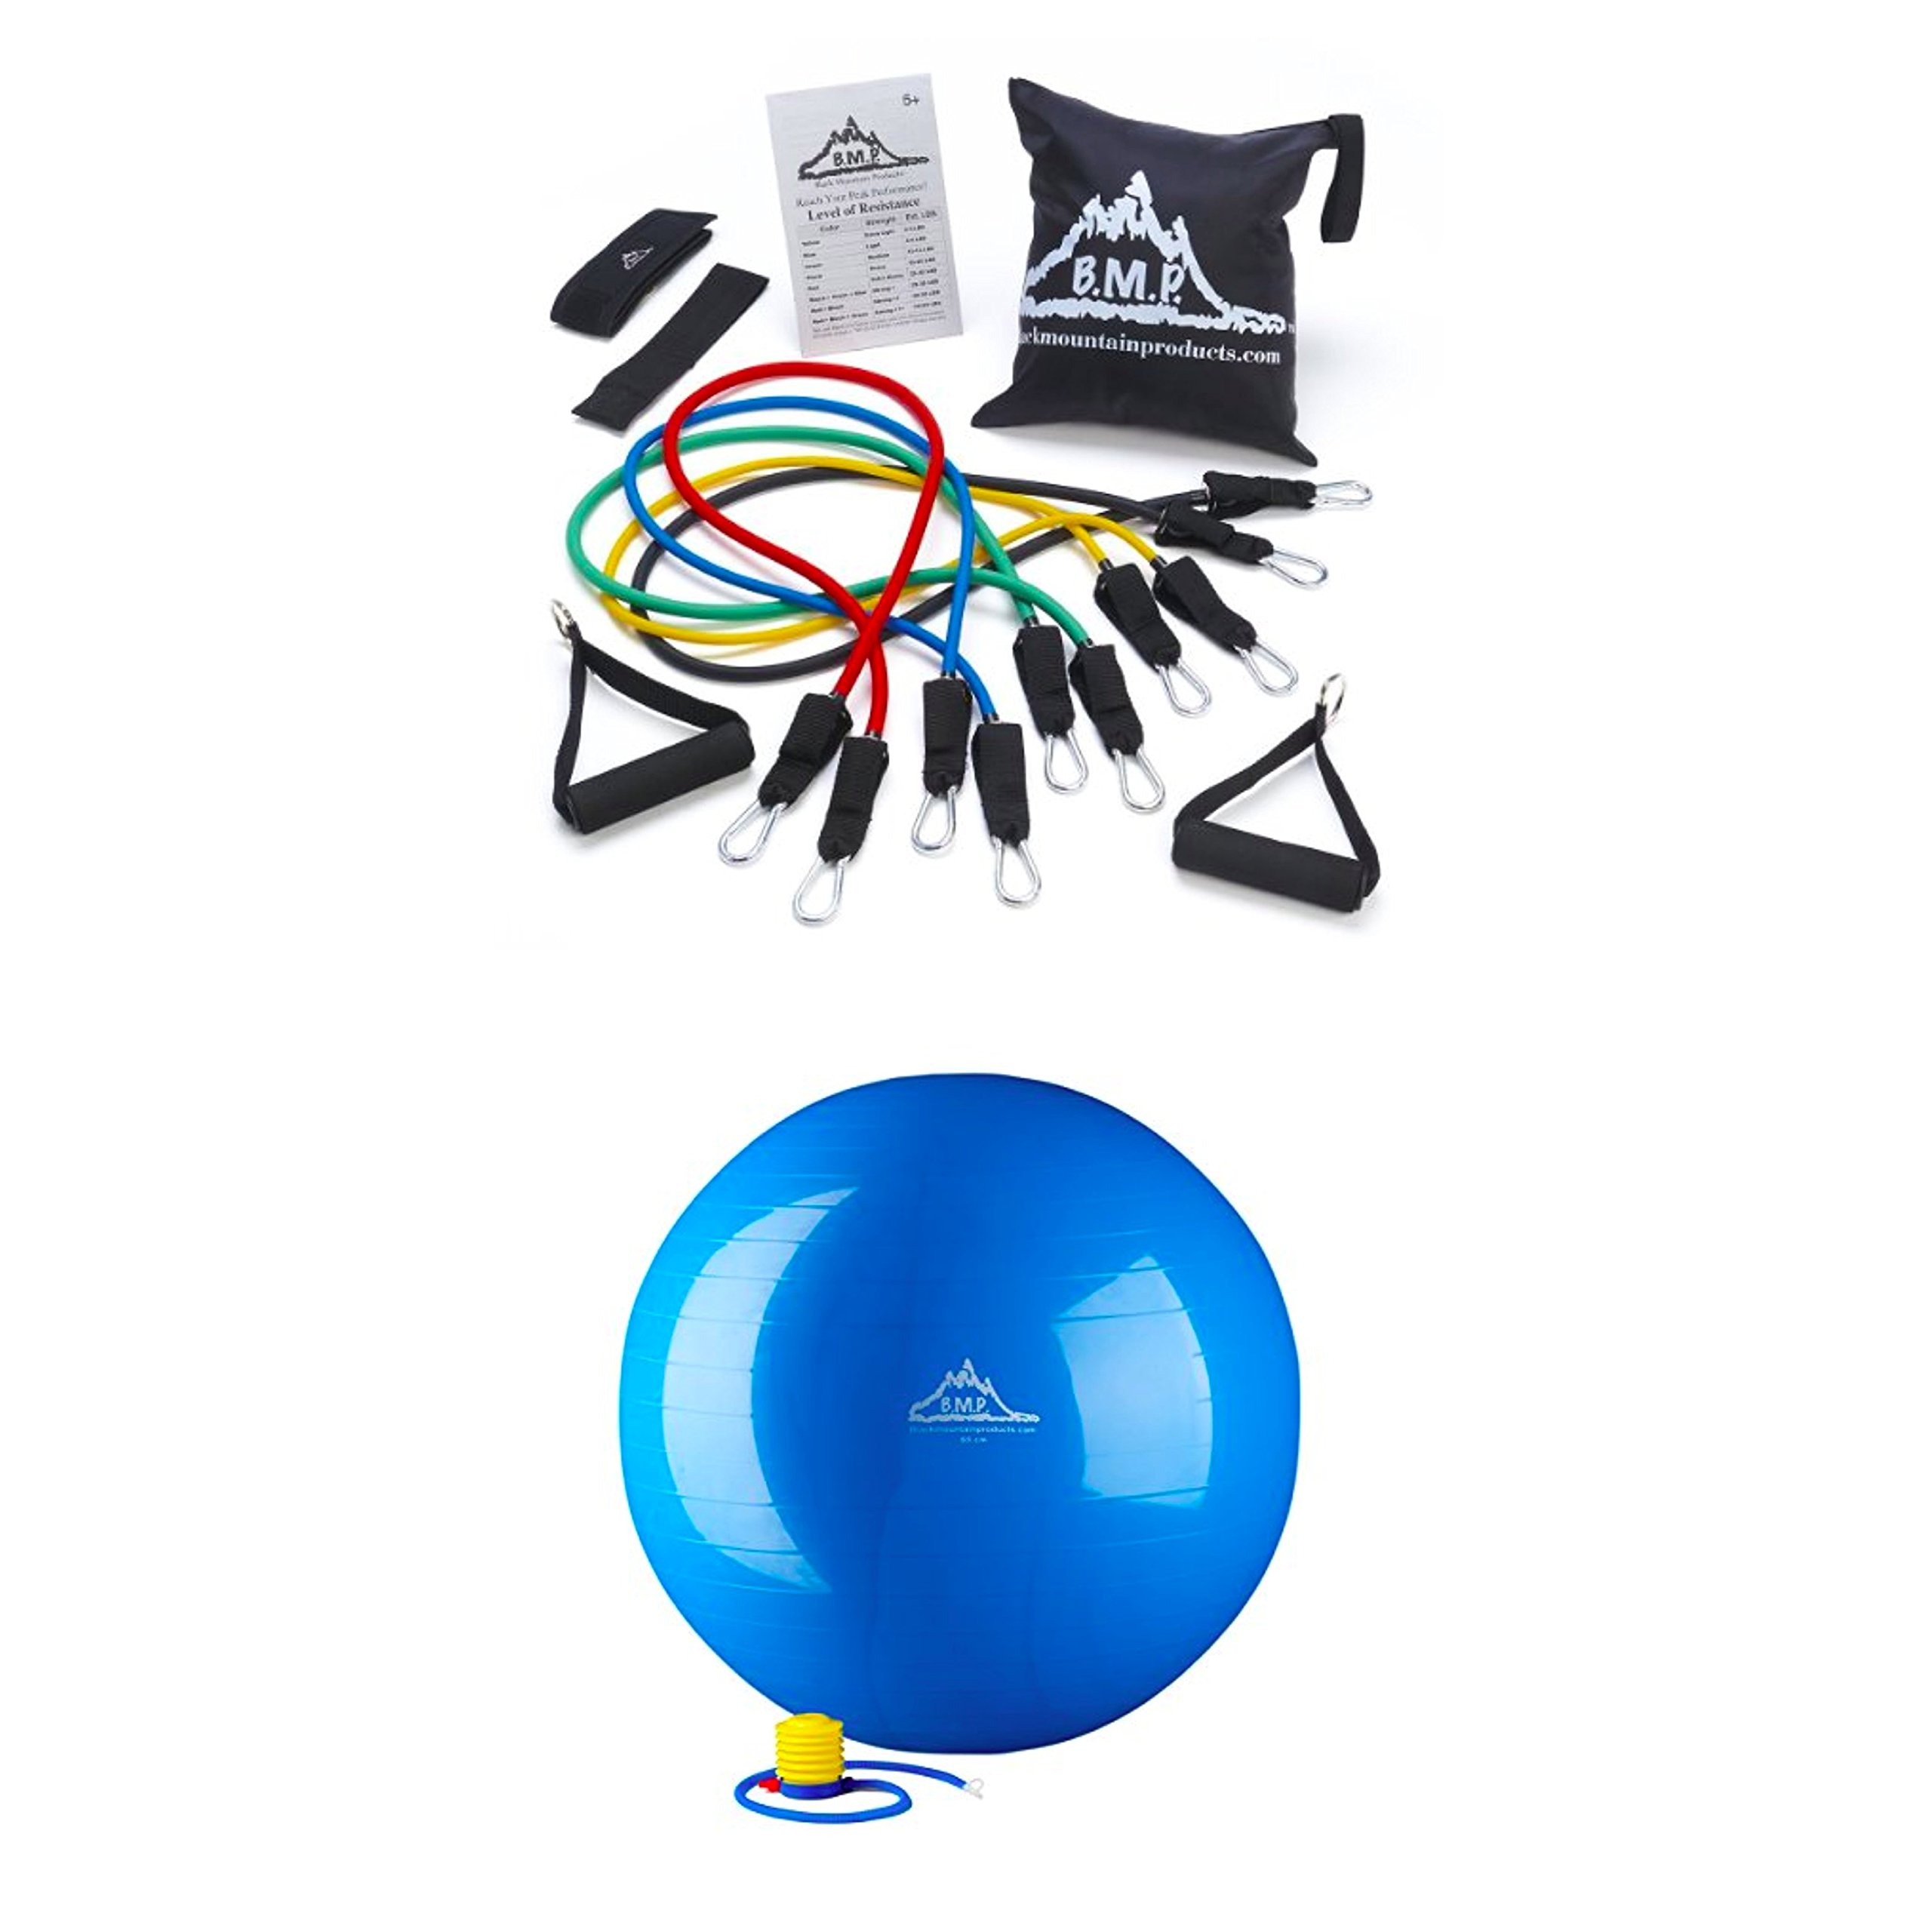 Bundle Includes 2 Items - Black Mountain Products Resistance Band Set with Door Anchor, Ankle Strap, Exercise Chart, and Resistance Band and Black Mountain Products Static Strength Exercise Stability